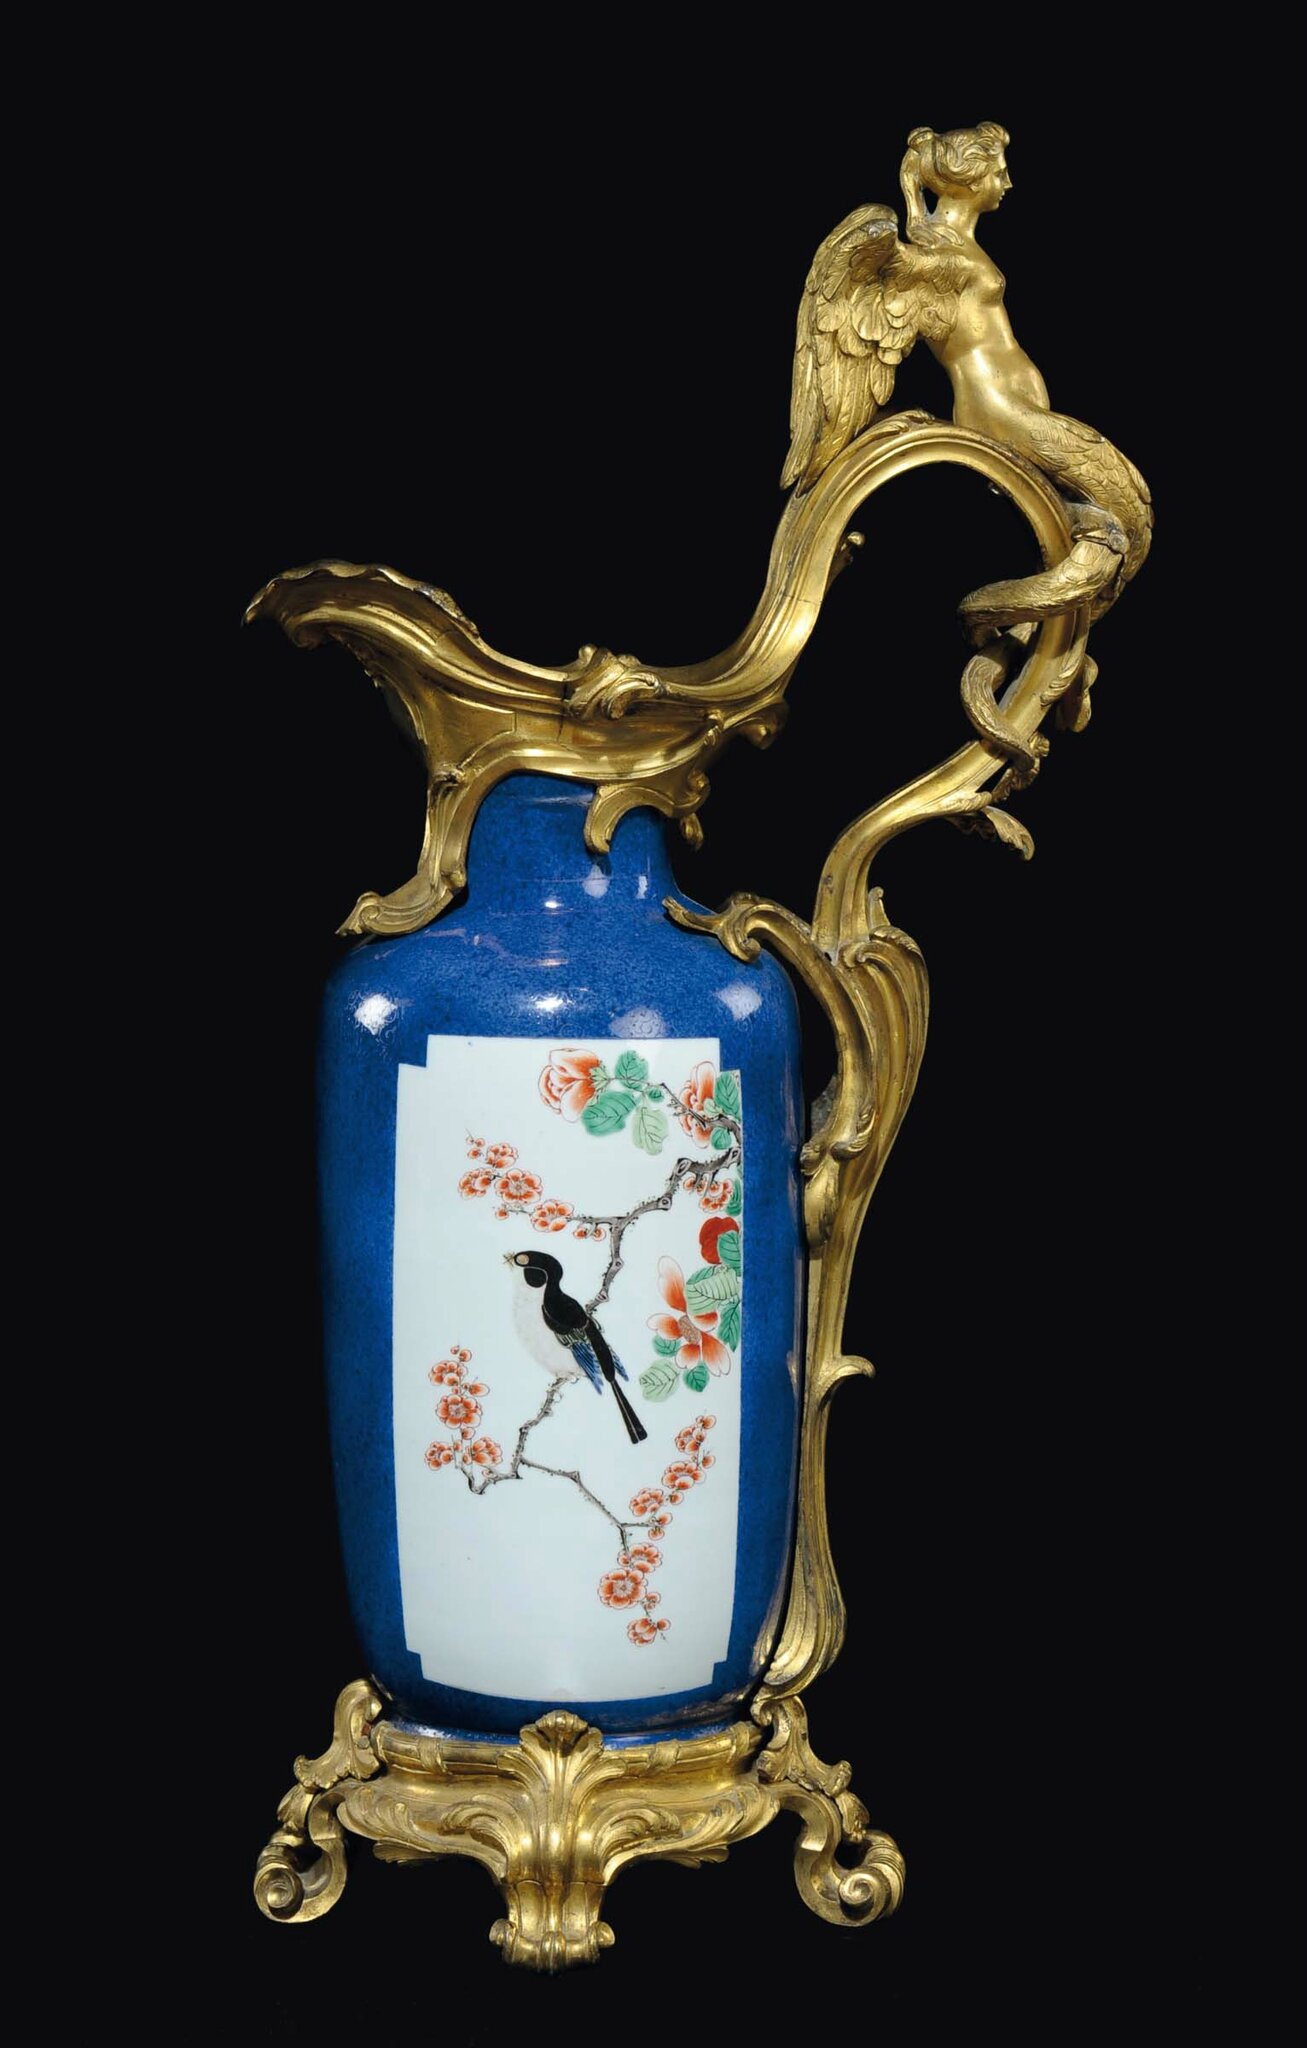 A Famille-Verte blue-ground vase on a gilt bronze base, China, Qing Dynasty, Kangxi Period (1662-1722)